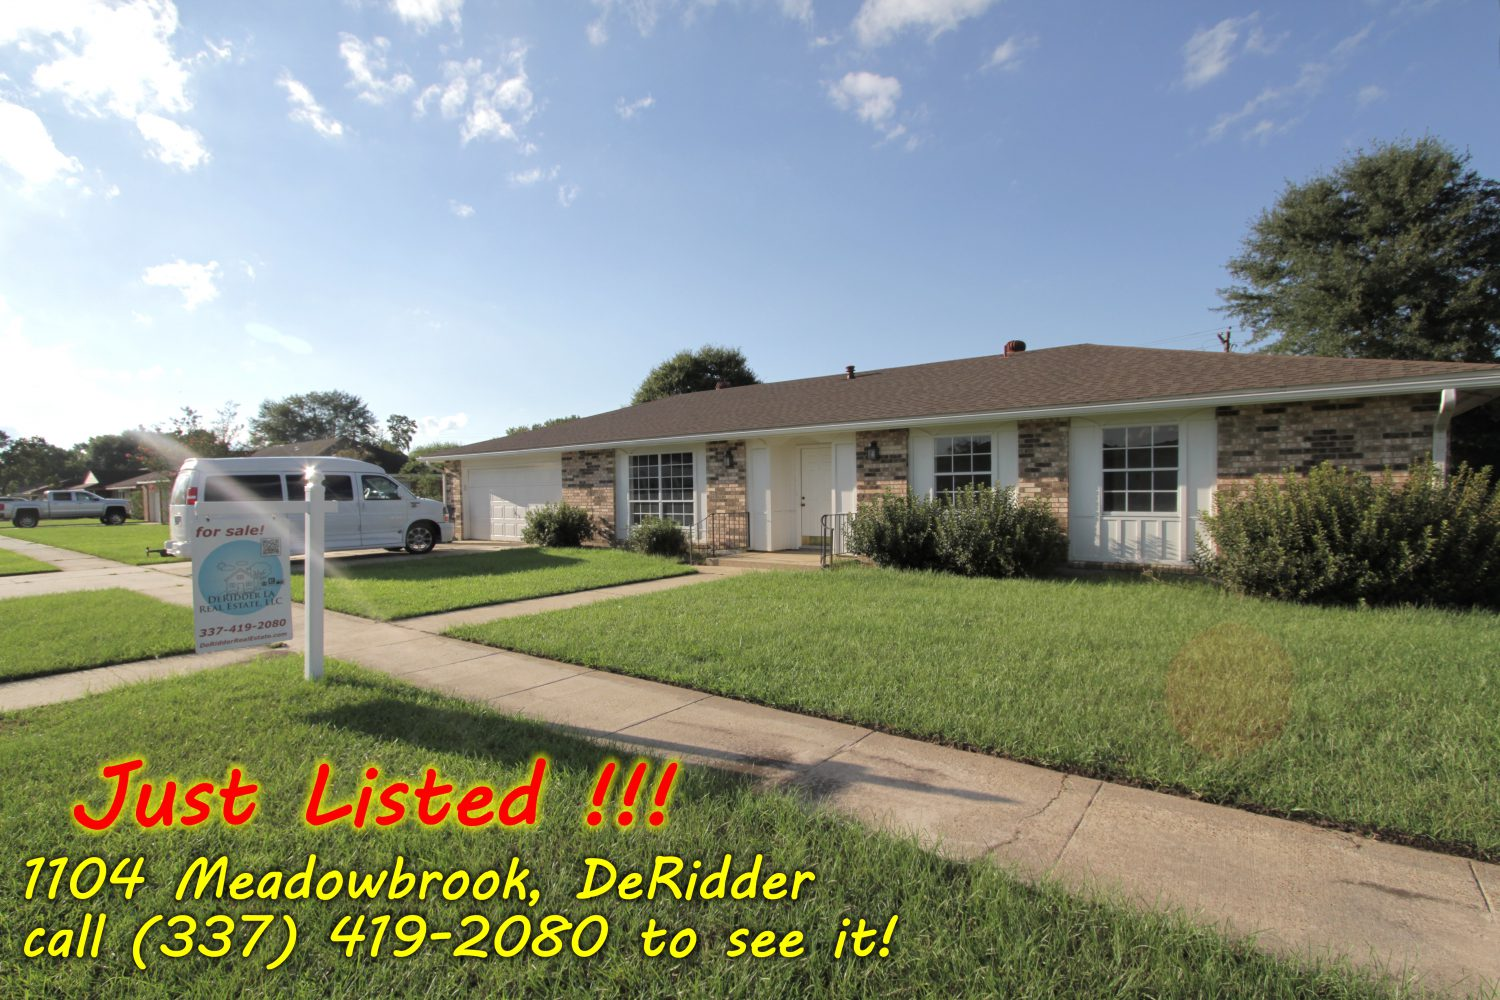 1104 Meadowbrook - $134,900